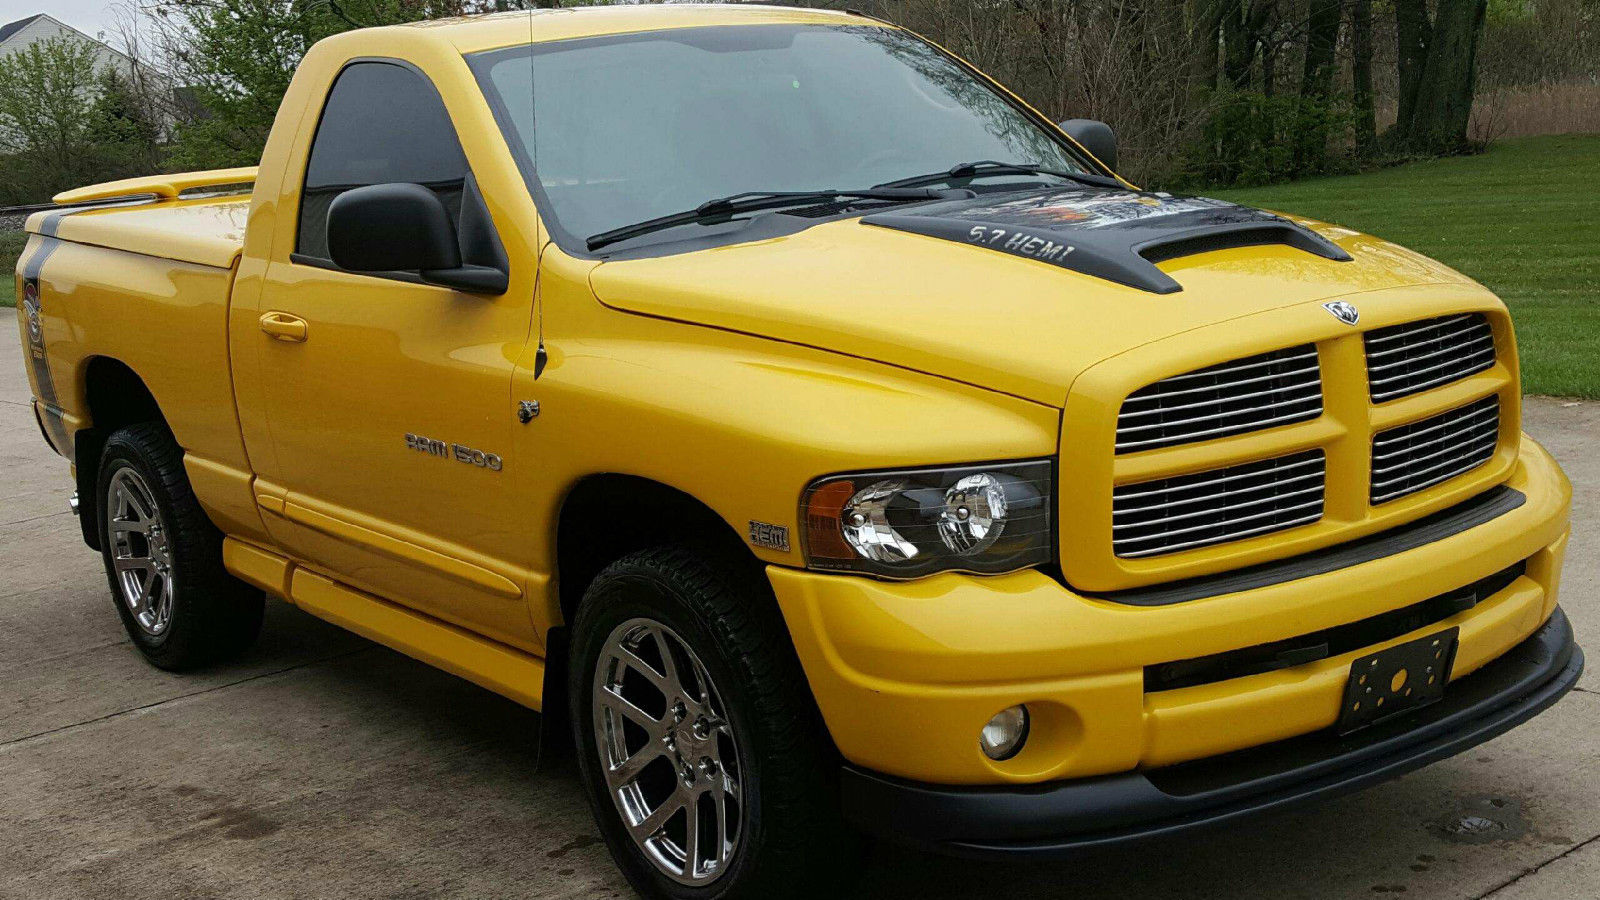 2004 dodge ram 1500 rumble bee jeff pick. Black Bedroom Furniture Sets. Home Design Ideas